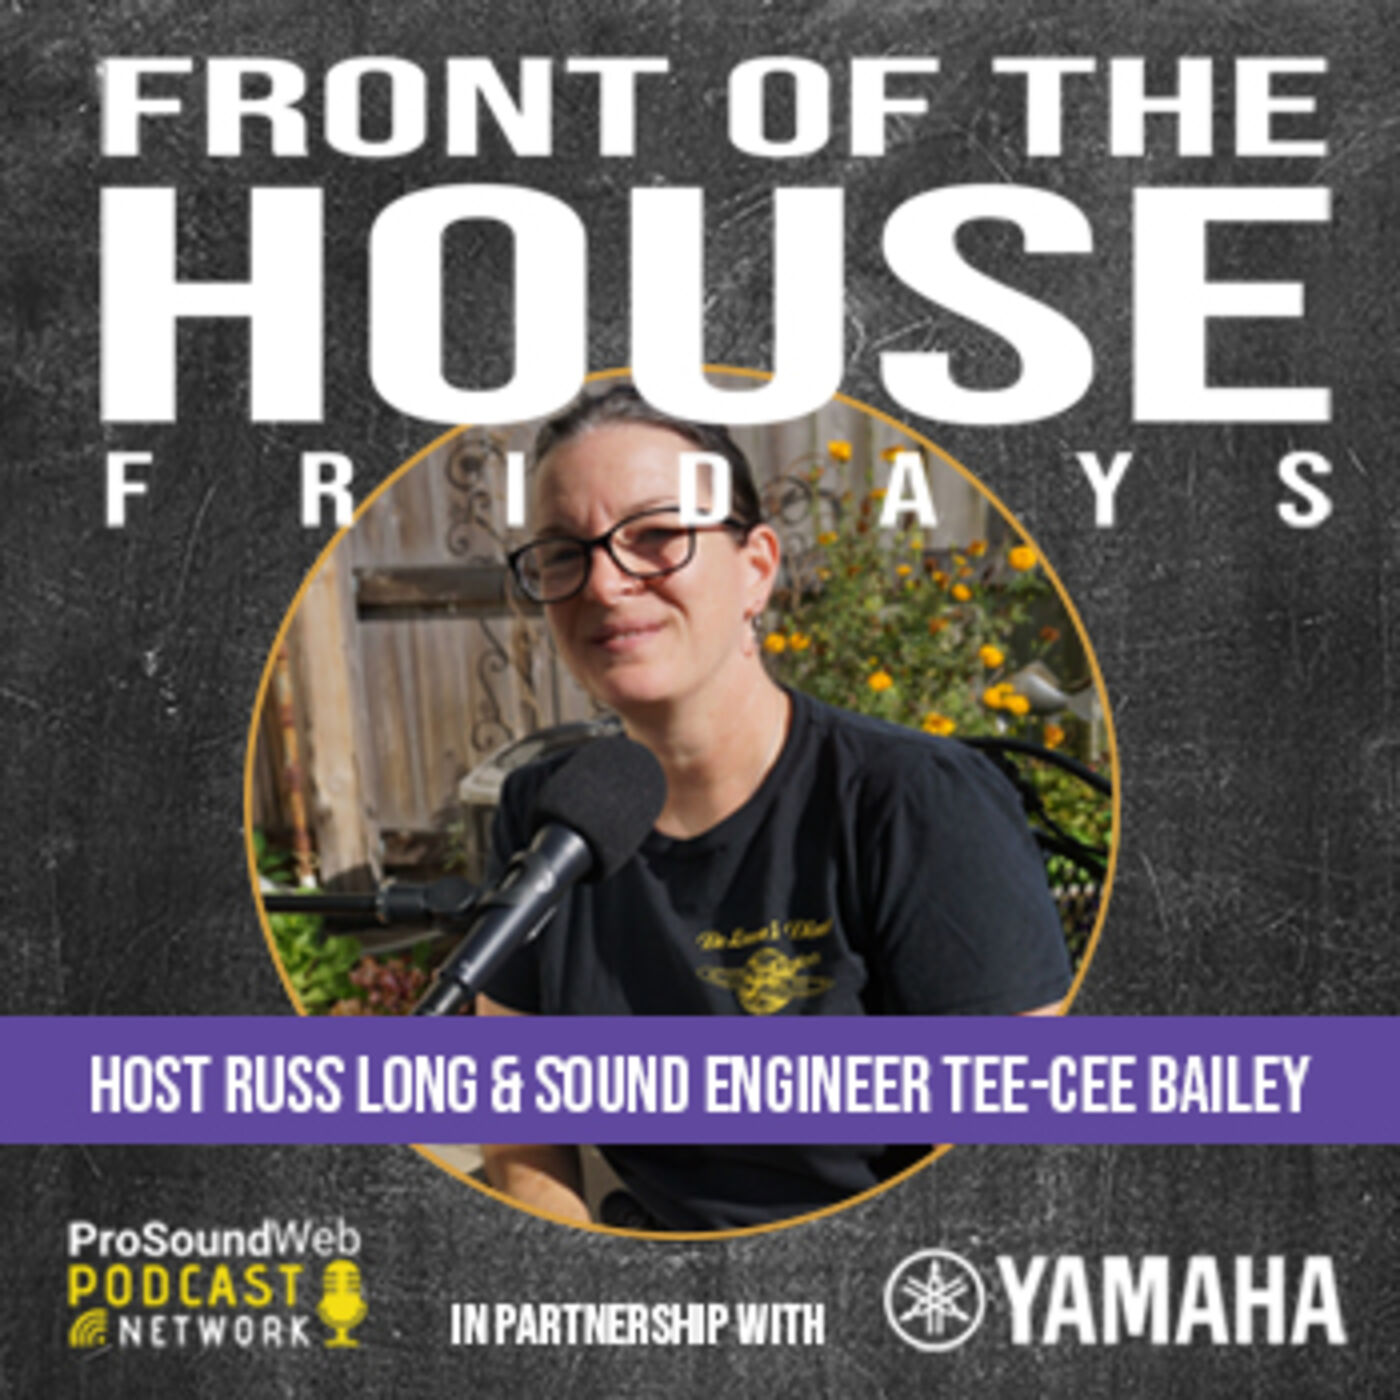 Episode 16: Live & Monitor Engineer Tee-Cee Bailey